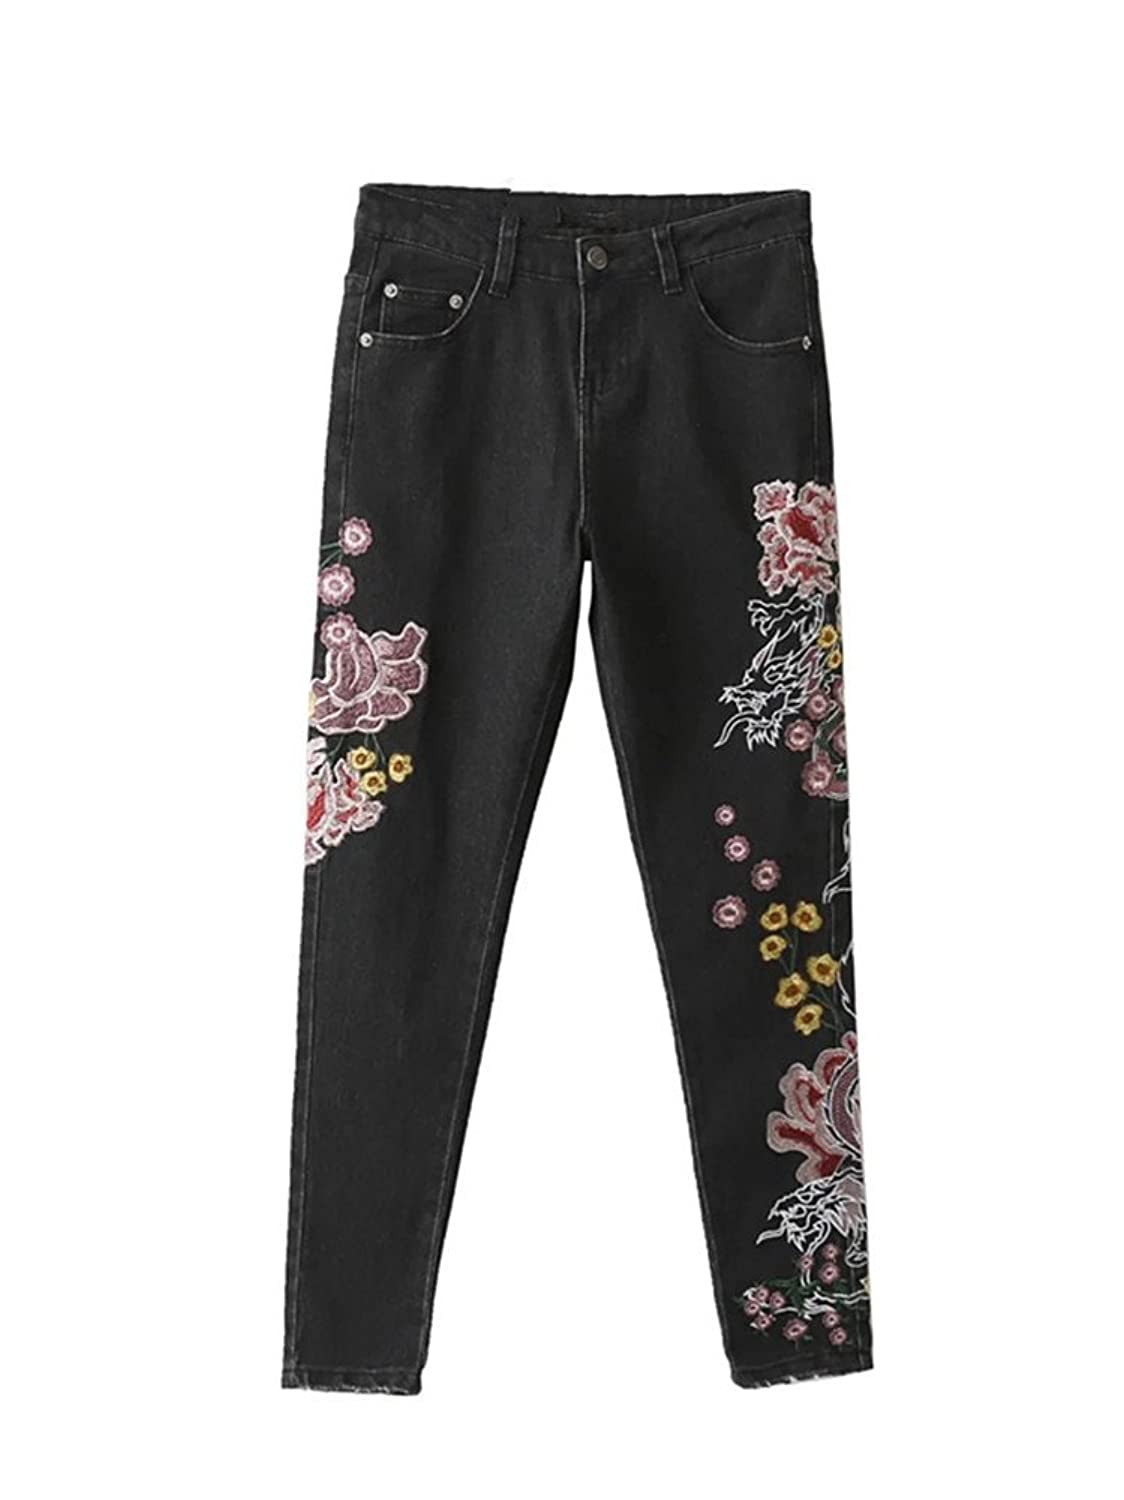 Women's Flowery Embroidery Embellished Skinny Fit Denim Washed Jeans Black